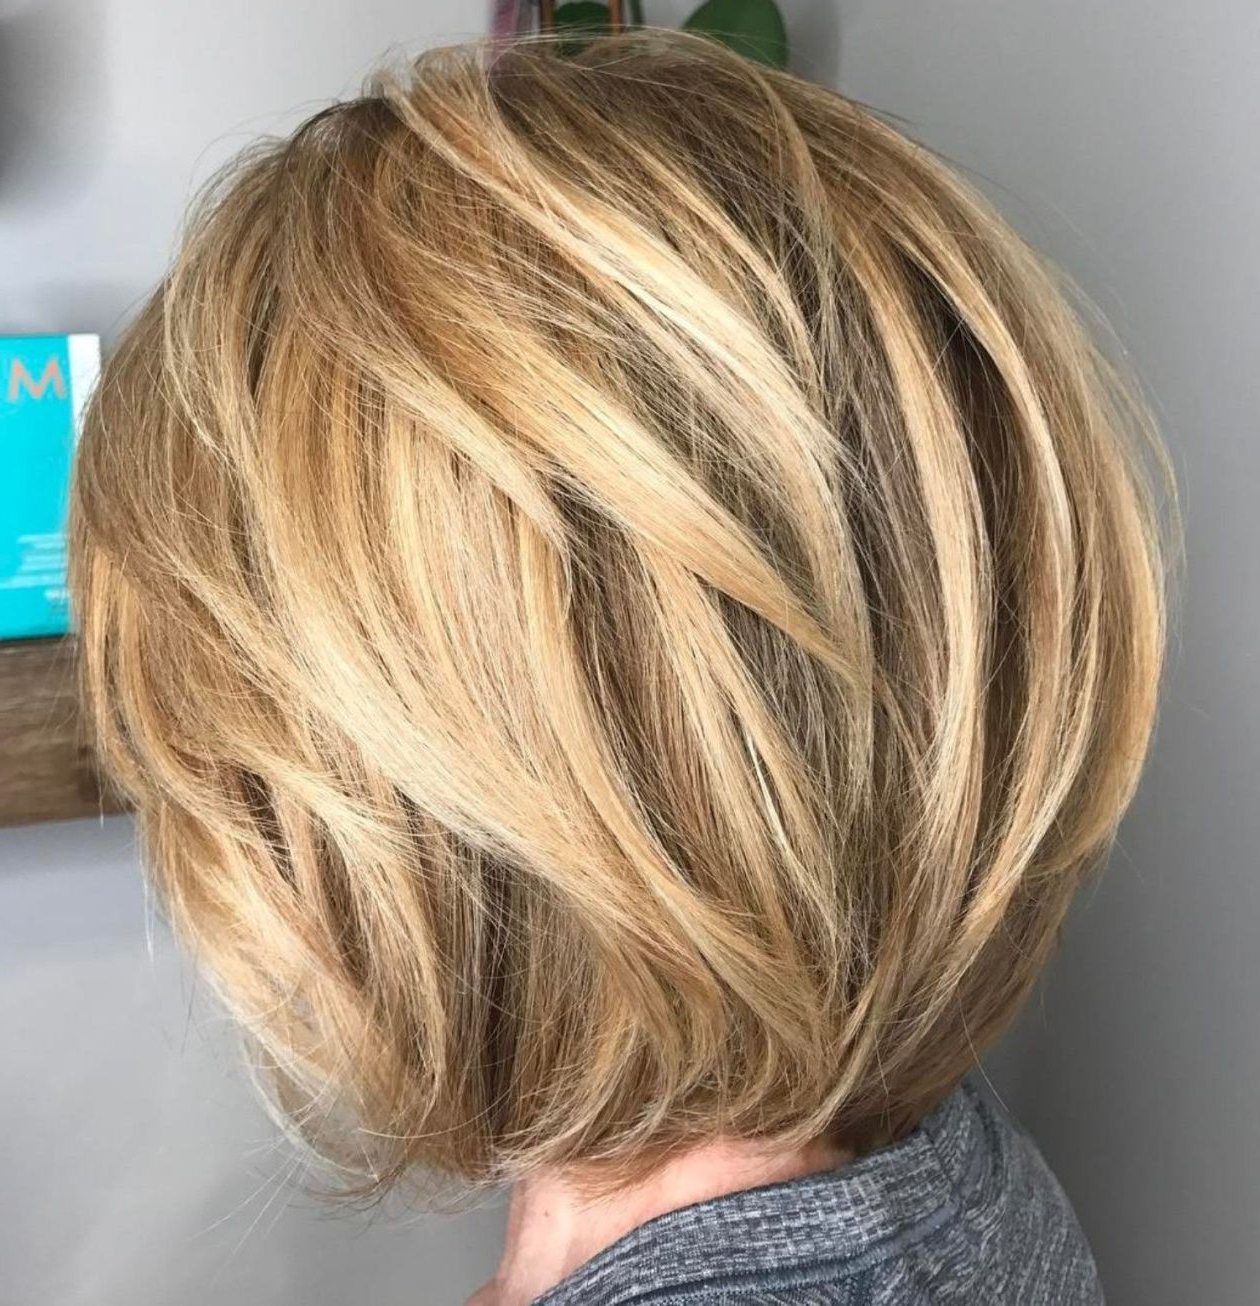 70 Cute And Easy To Style Short Layered Hairstyles In 2019 With Regard To Feathered Haircuts With Angled Bangs (Gallery 18 of 20)